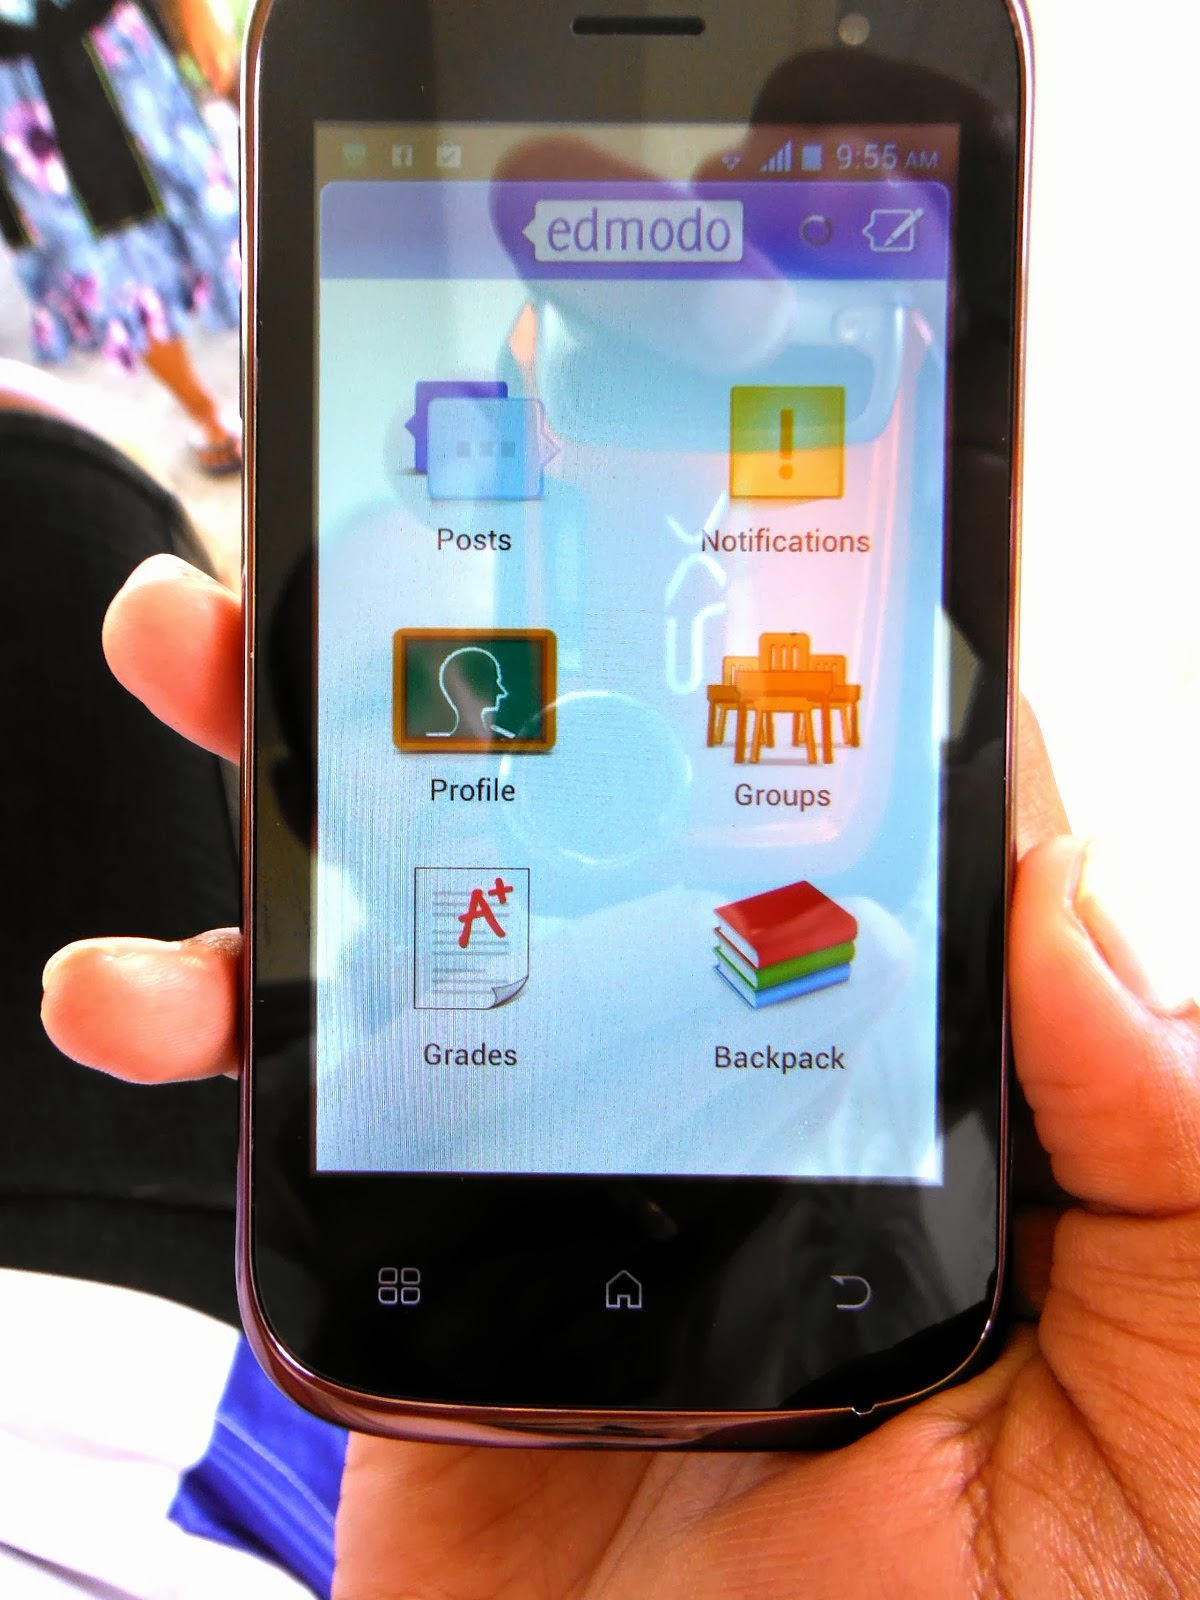 Edmodo on Android